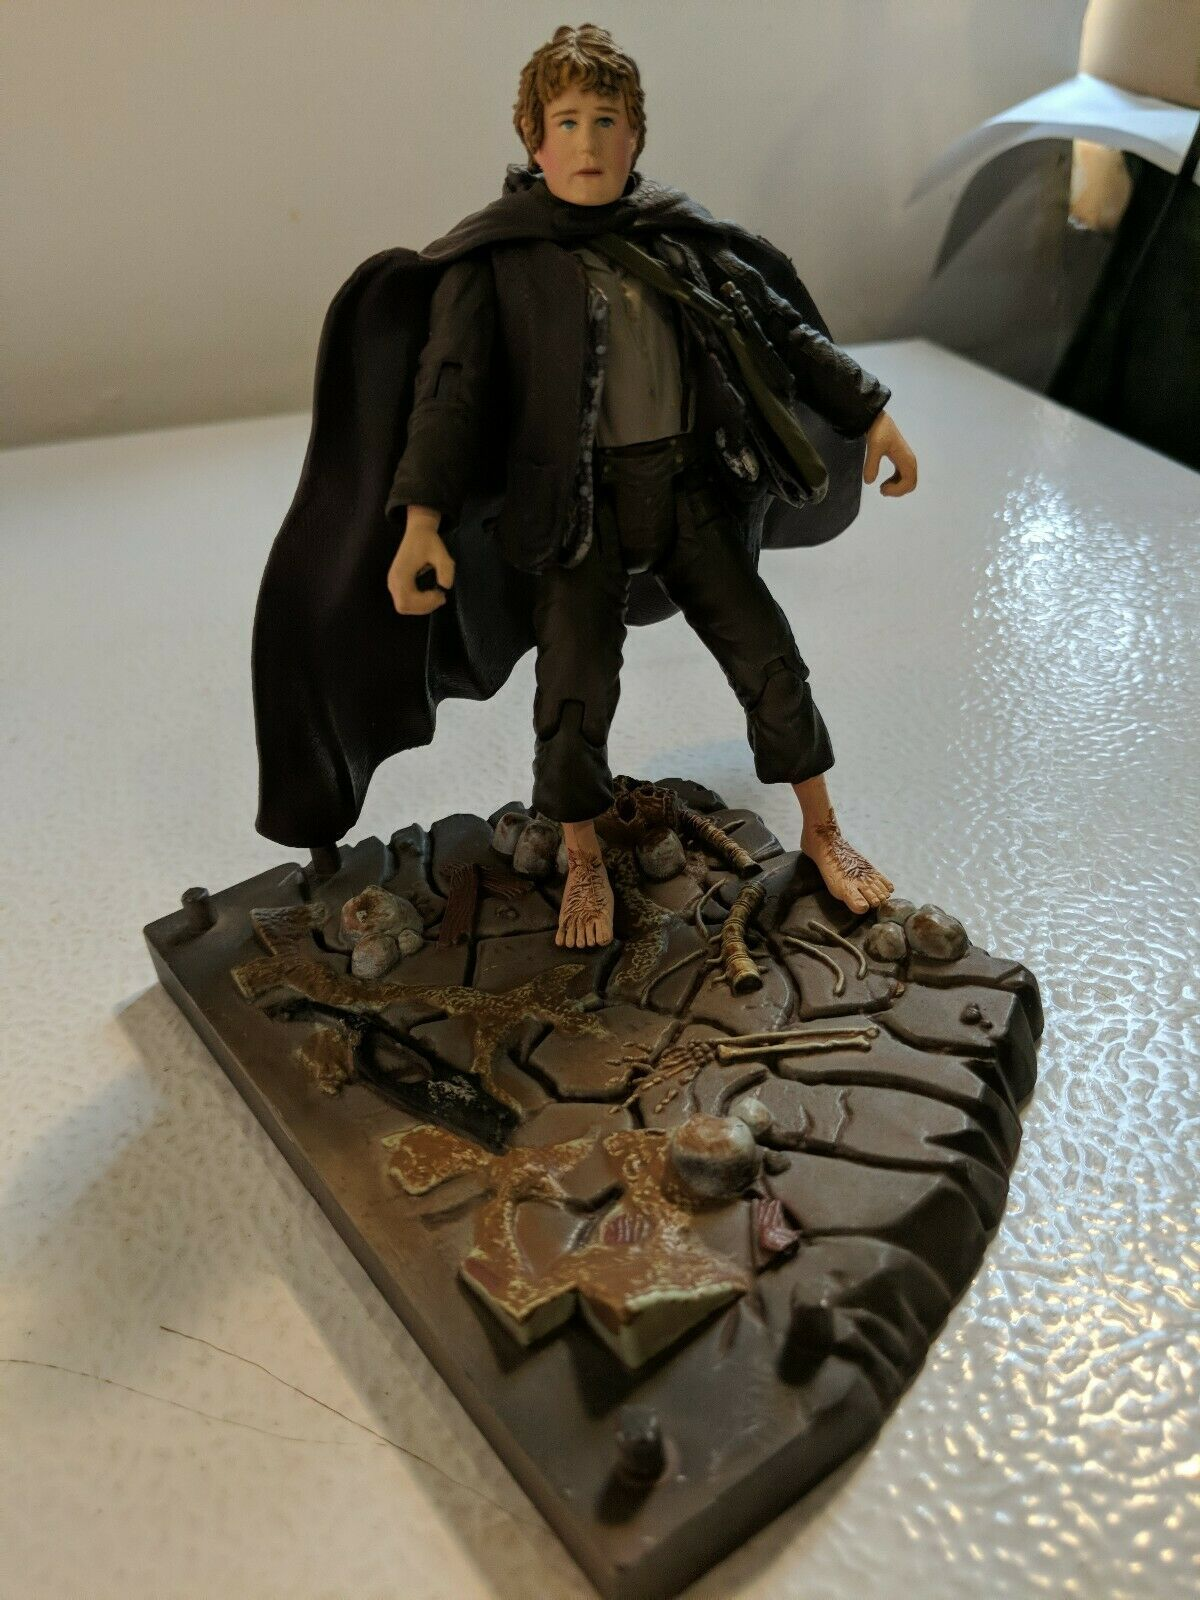 The Lord of the Rings Samwise Gamgee w/base Mt Doom & accessories 2001 Marvel